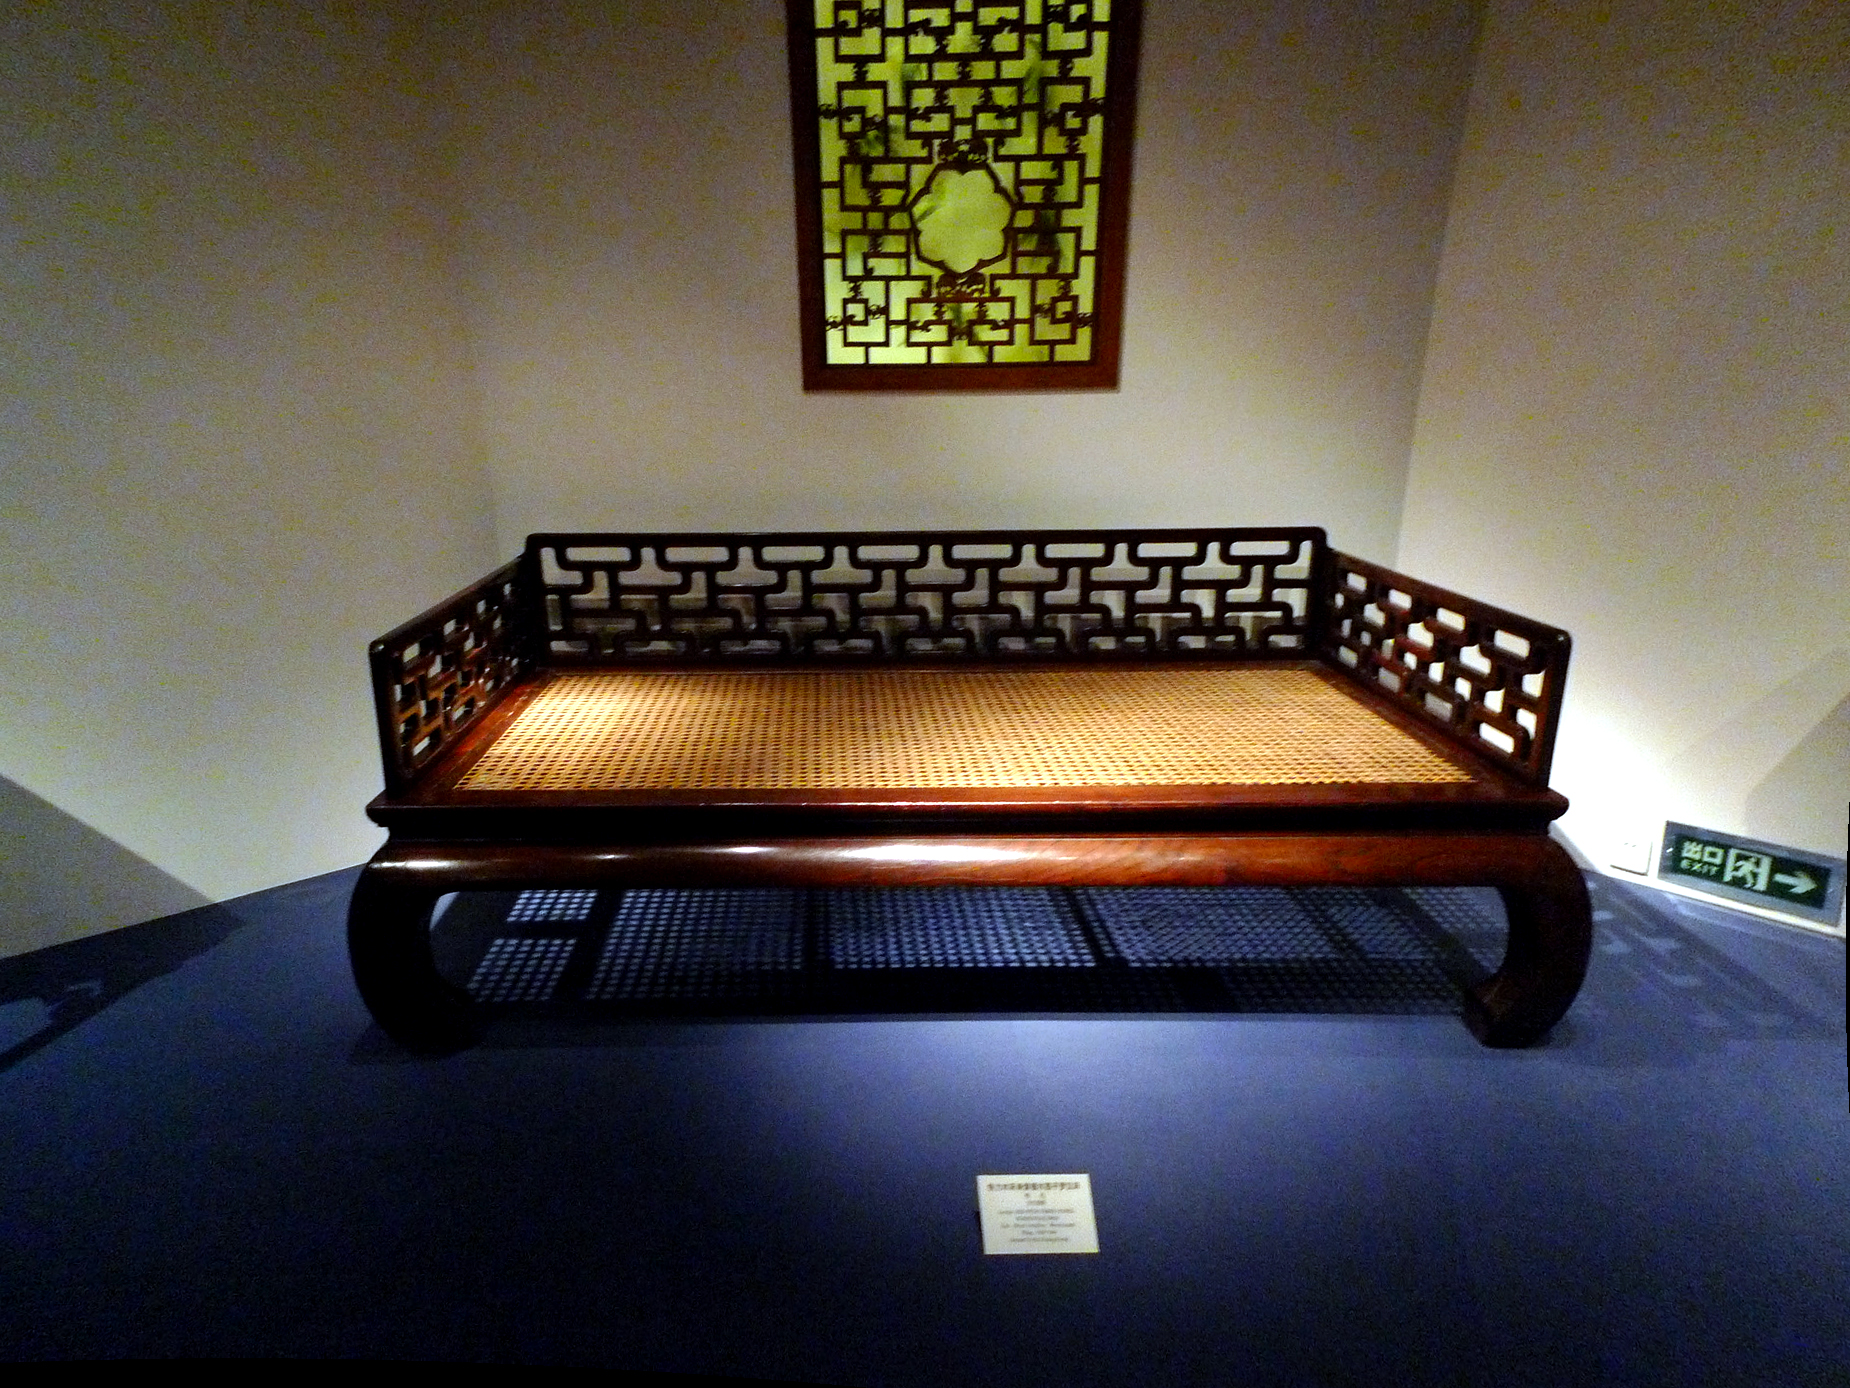 Depiction of Mueble antiguo chino